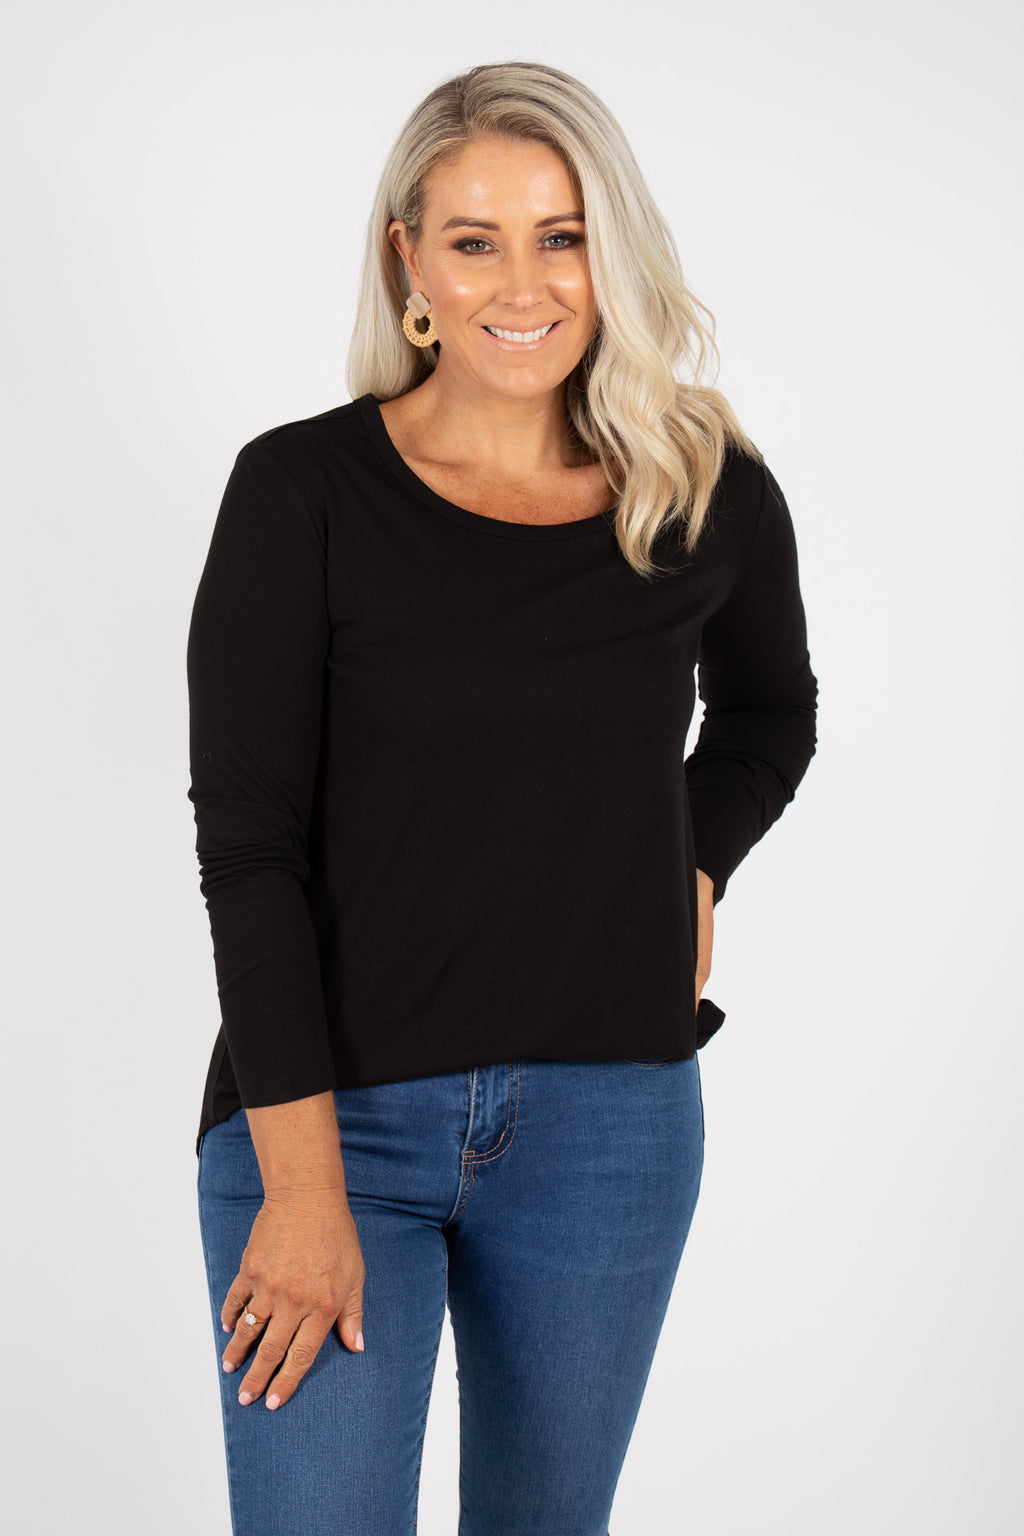 Megan Long Sleeve Top in Black